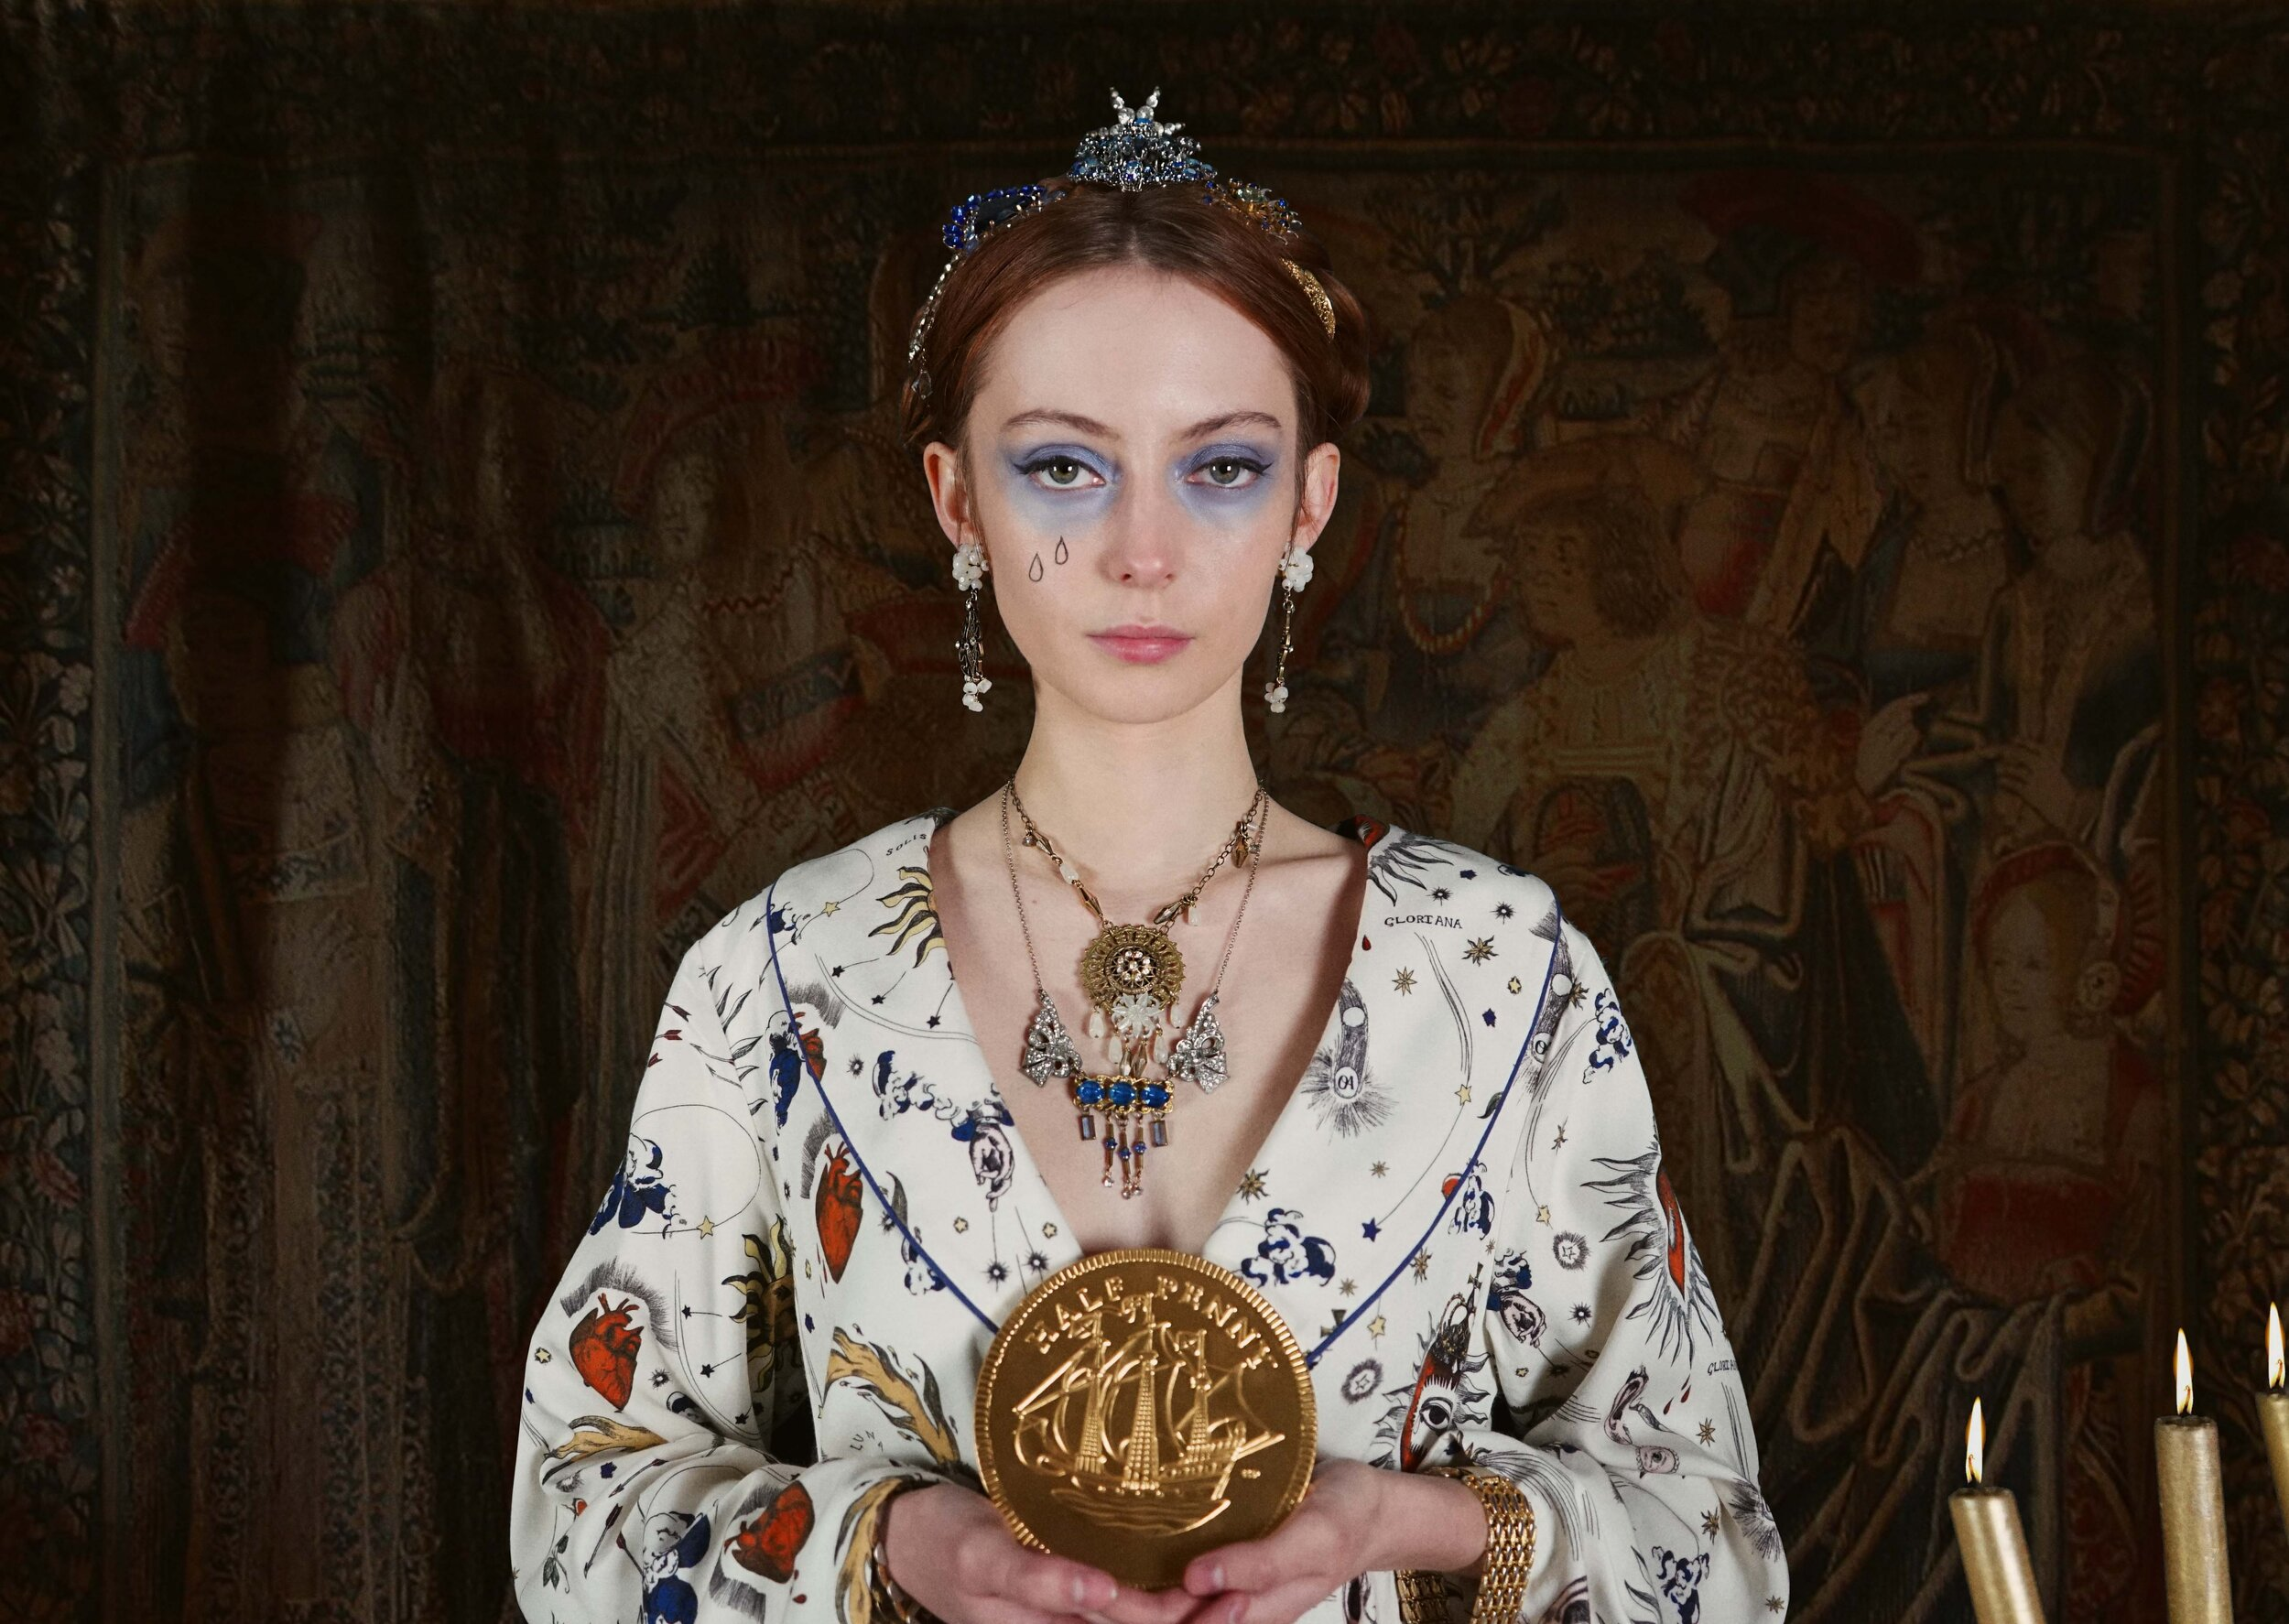 When planning the collaboration with Olivia Annabelle, where did you look for inspiration?    It was a perfect opportunity to look again at the great paintings of Queen Elizabeth I dressed in all her majestic finery, and to wider examples of Tudor jewellery to get a feel for the shapes and motifs which were popular. I also loved revisiting the costumes and styling of Cate Blanchett in the two films about Elizabeth. But I also wanted to bring a sense of timelessness to the collection and I wanted to reflect how our fascination with symbolic and statement jewellery has endured through the centuries. That's why it was important for me to use costume jewellery pieces from right across the 20th century – from the 1900s to the 1990s.   What is your favourite piece from the collection?   I absolutely loved putting the Gloriana Halo Crown together, starting with the Edwardian paste moon-shaped dress ornament and the Art Deco era paste star brooch, both which I already had in my stash of vintage treasures, and then sourcing the other pieces of vintage jewellery to echo the rich royal blue hue that runs through the Olivia Annabelle print. But I think my absolute favourite is the OA Eye, created from an oval early 20th century paste dress buckle. The design came to me in a flash of inspiration. I had all the little component pieces here in the studio and everything came together in such perfect harmony!   What led you to become a jewellery designer?   That's interesting and quite difficult to pinpoint as it happened almost accidentally. I have always enjoyed creative activities, but I took a more academic route at university, studying history, obtaining a PhD and becoming a researcher and university lecturer. When on maternity leave with my third daughter I decided that I wanted to explore more creative avenues and focused on how I might use my passion for vintage costume jewellery and treasure hunting at antiques markets and boot sales in this endeavour. Prompted by my cousin